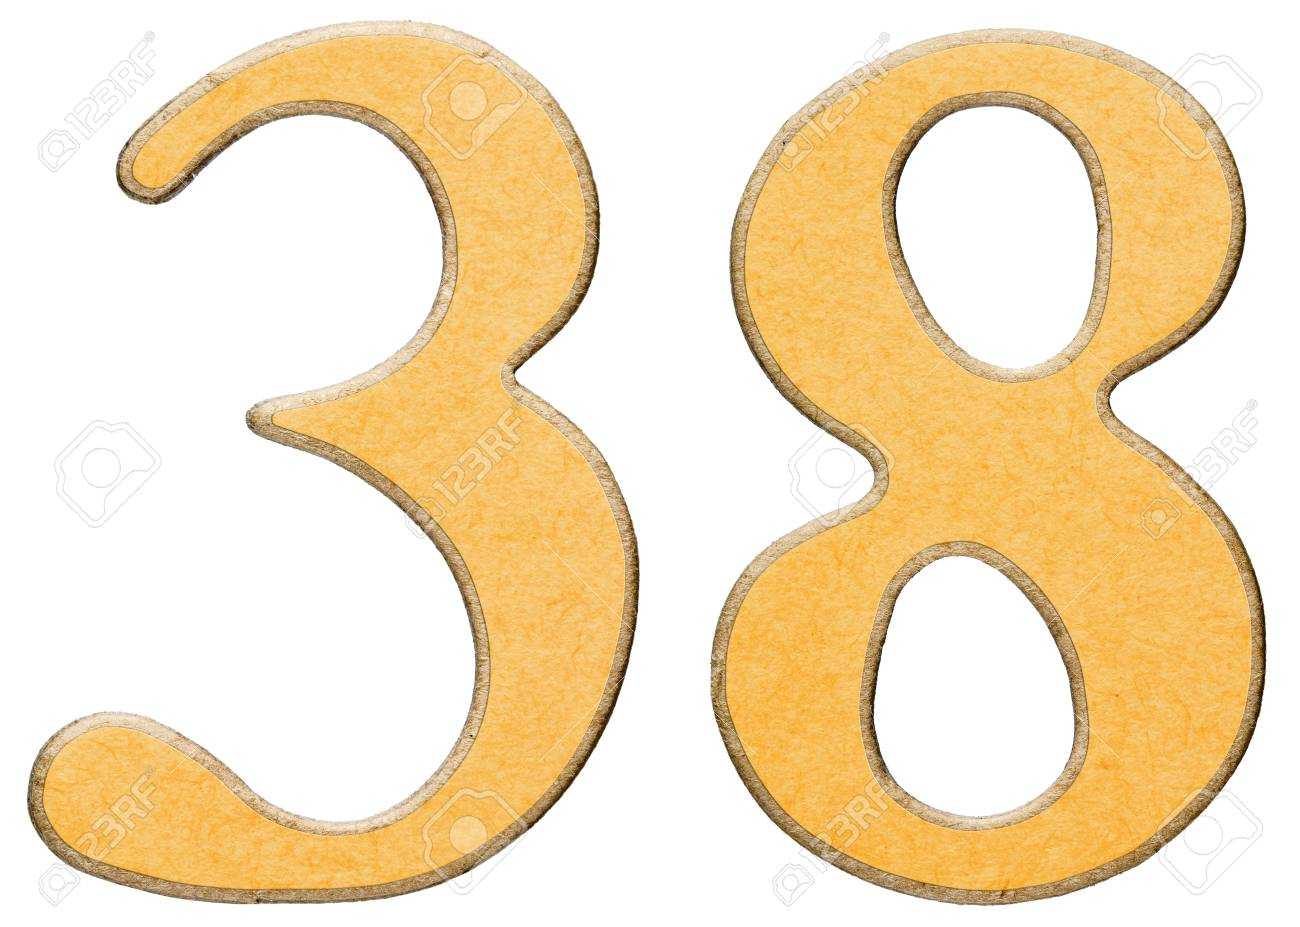 38 Thirty Eight Numeral Of Wood Combined With Yellow Insert Stock Photo Picture And Royalty Free Image Image 68489036